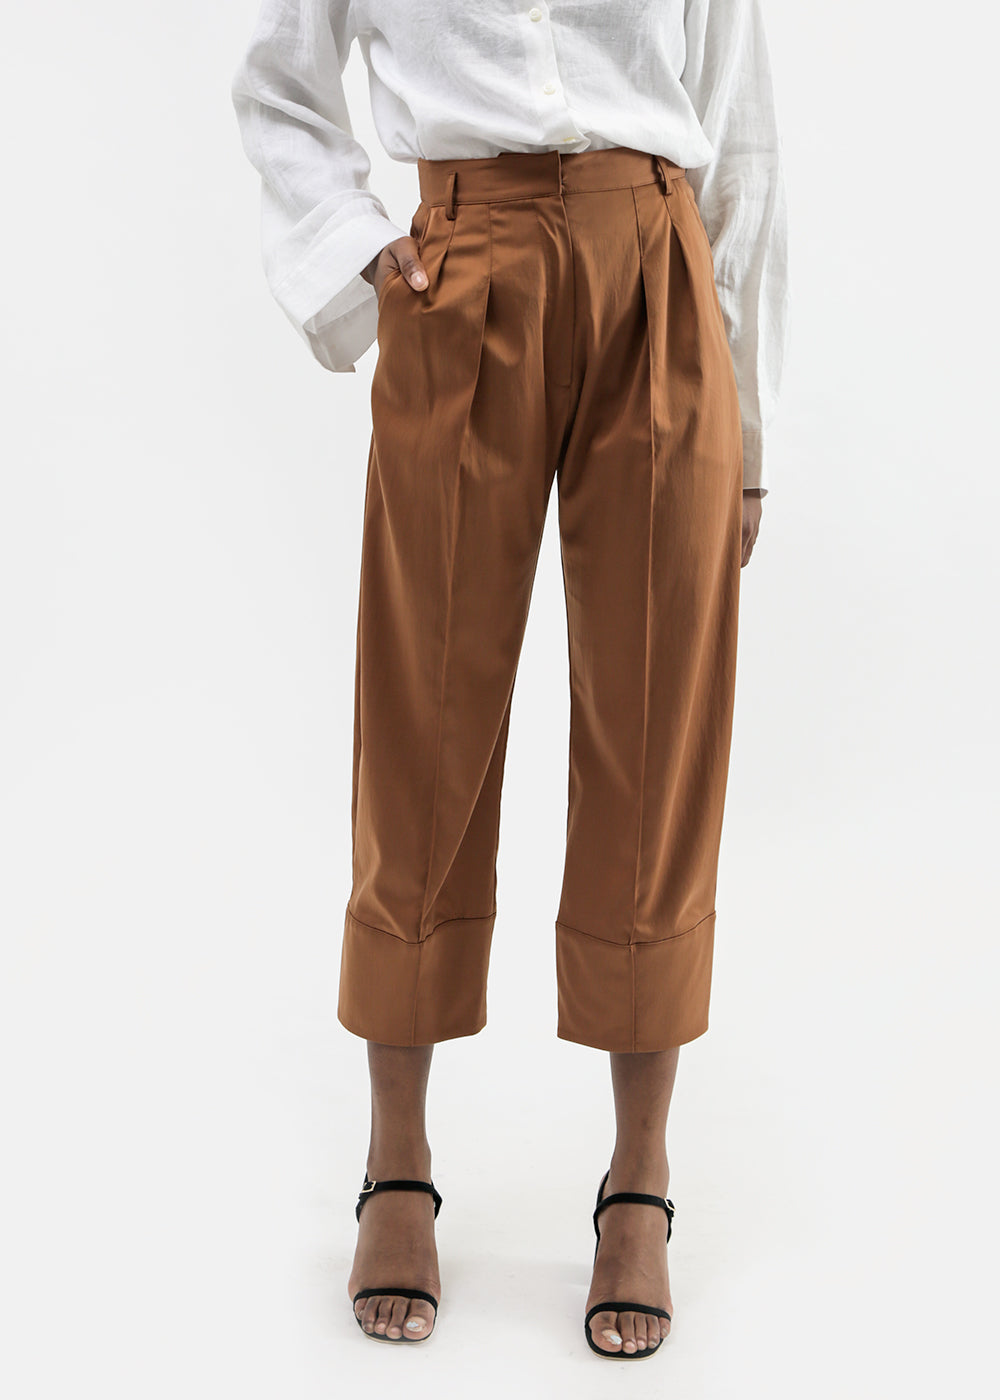 Arcana NYC Bone Clocks Trouser — New Classics Studios